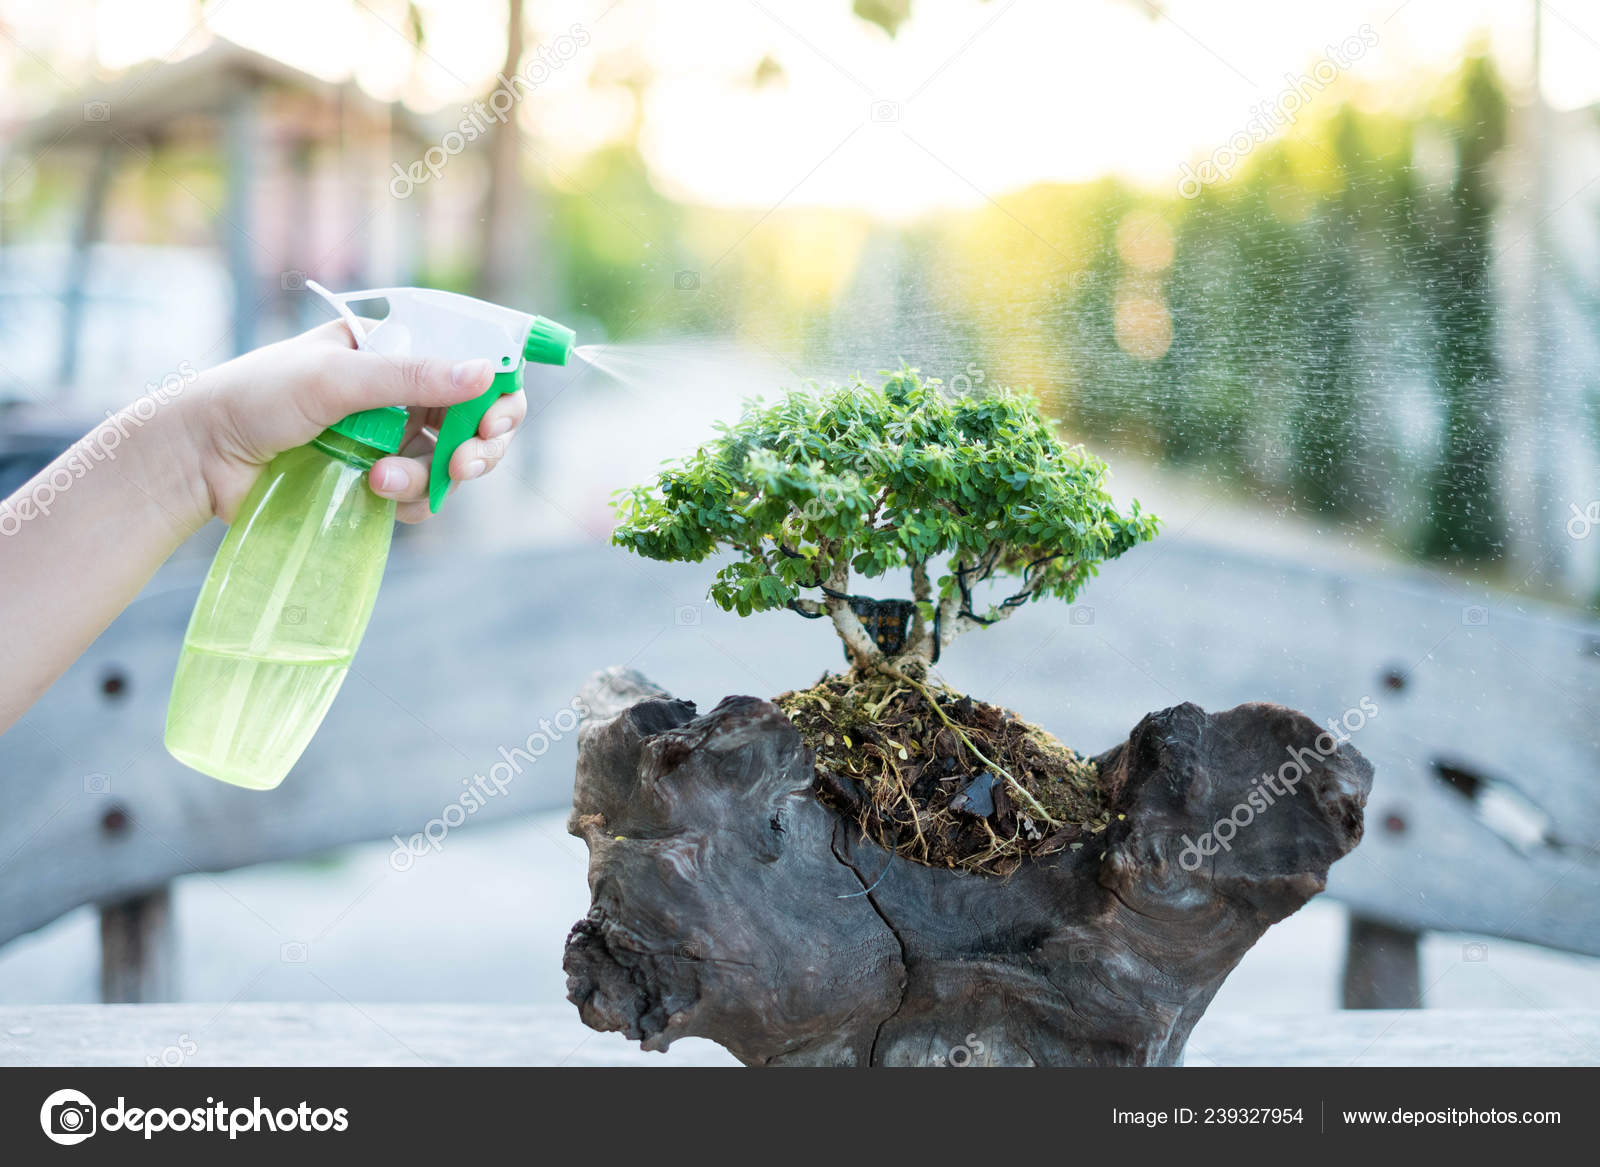 Bonsai Care Tending Houseplant Growth Watering Small Tree Tree Treatment Stock Photo C Chatchawan130839 Gmail Com 239327954